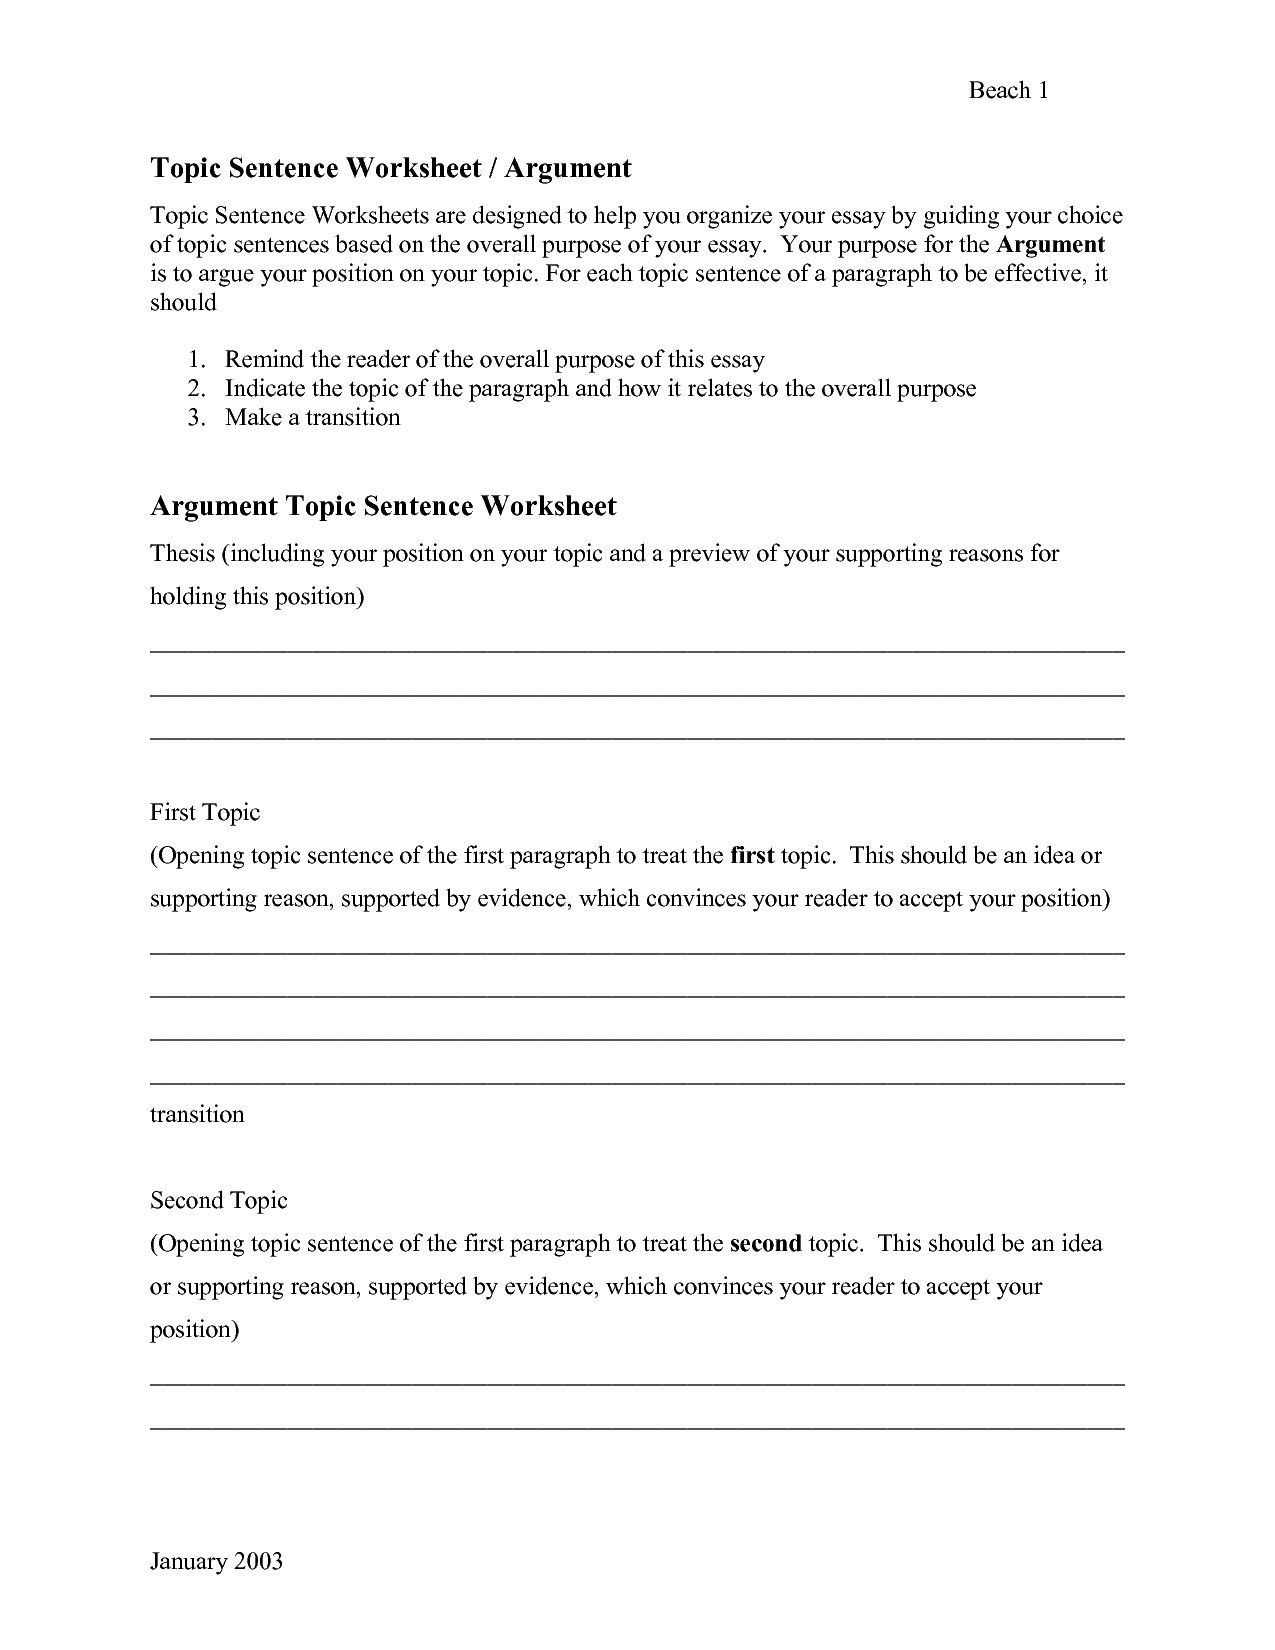 Topic Sentences Worksheets 3rd Grade In